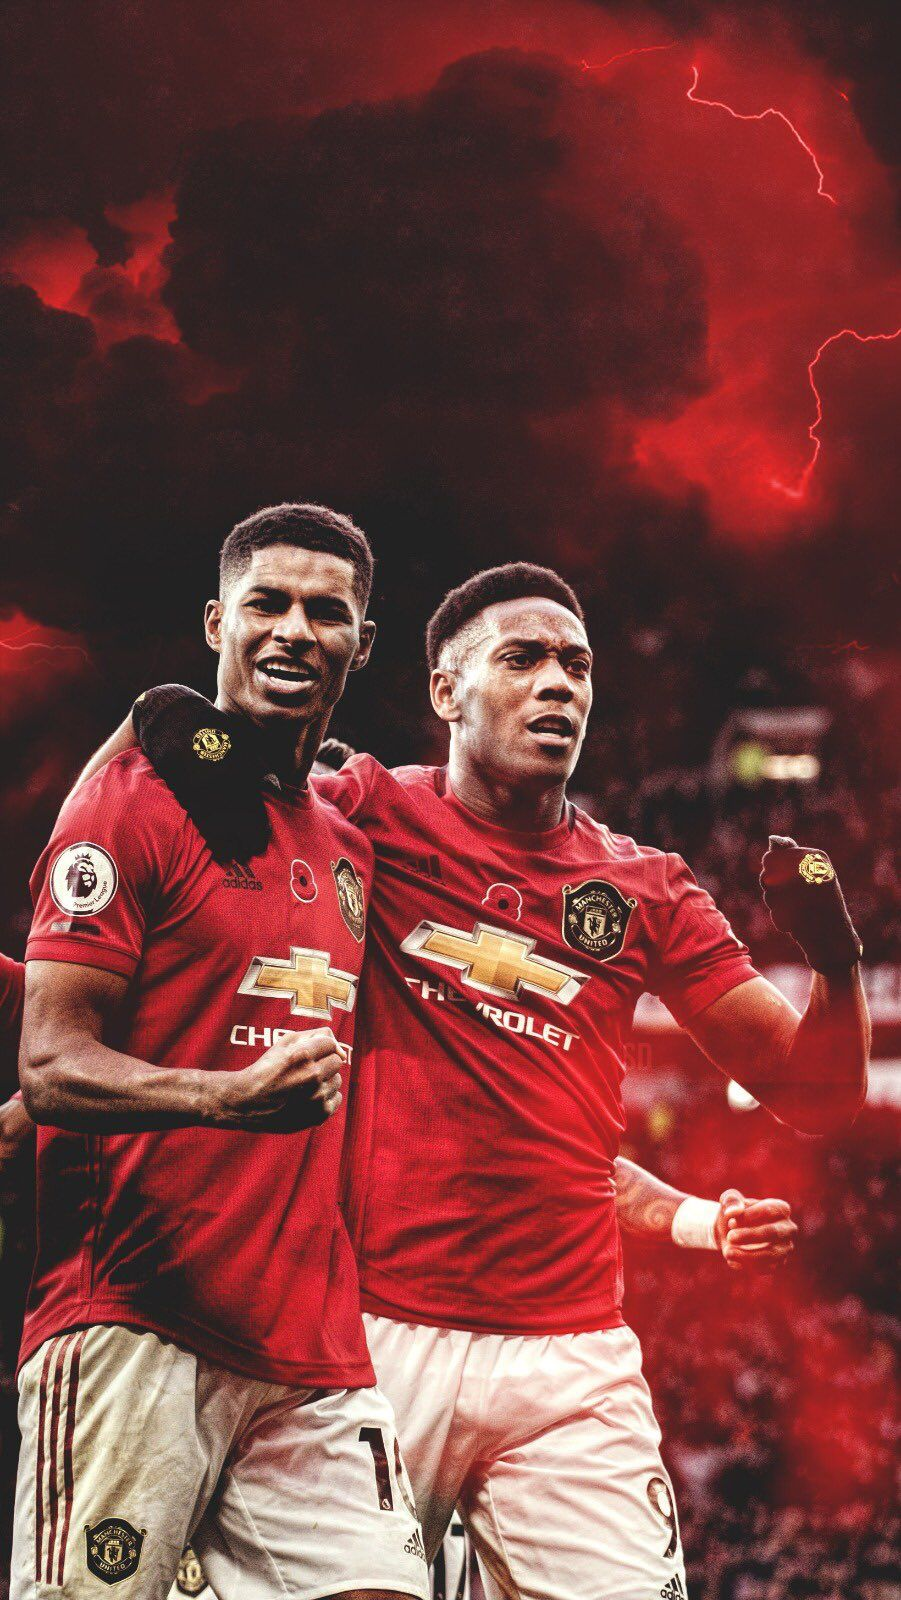 Pin By Ilanhobart On Joueur De Football In 2020 With Images Manchester United Legends Manchester United Fans Manchester United Players